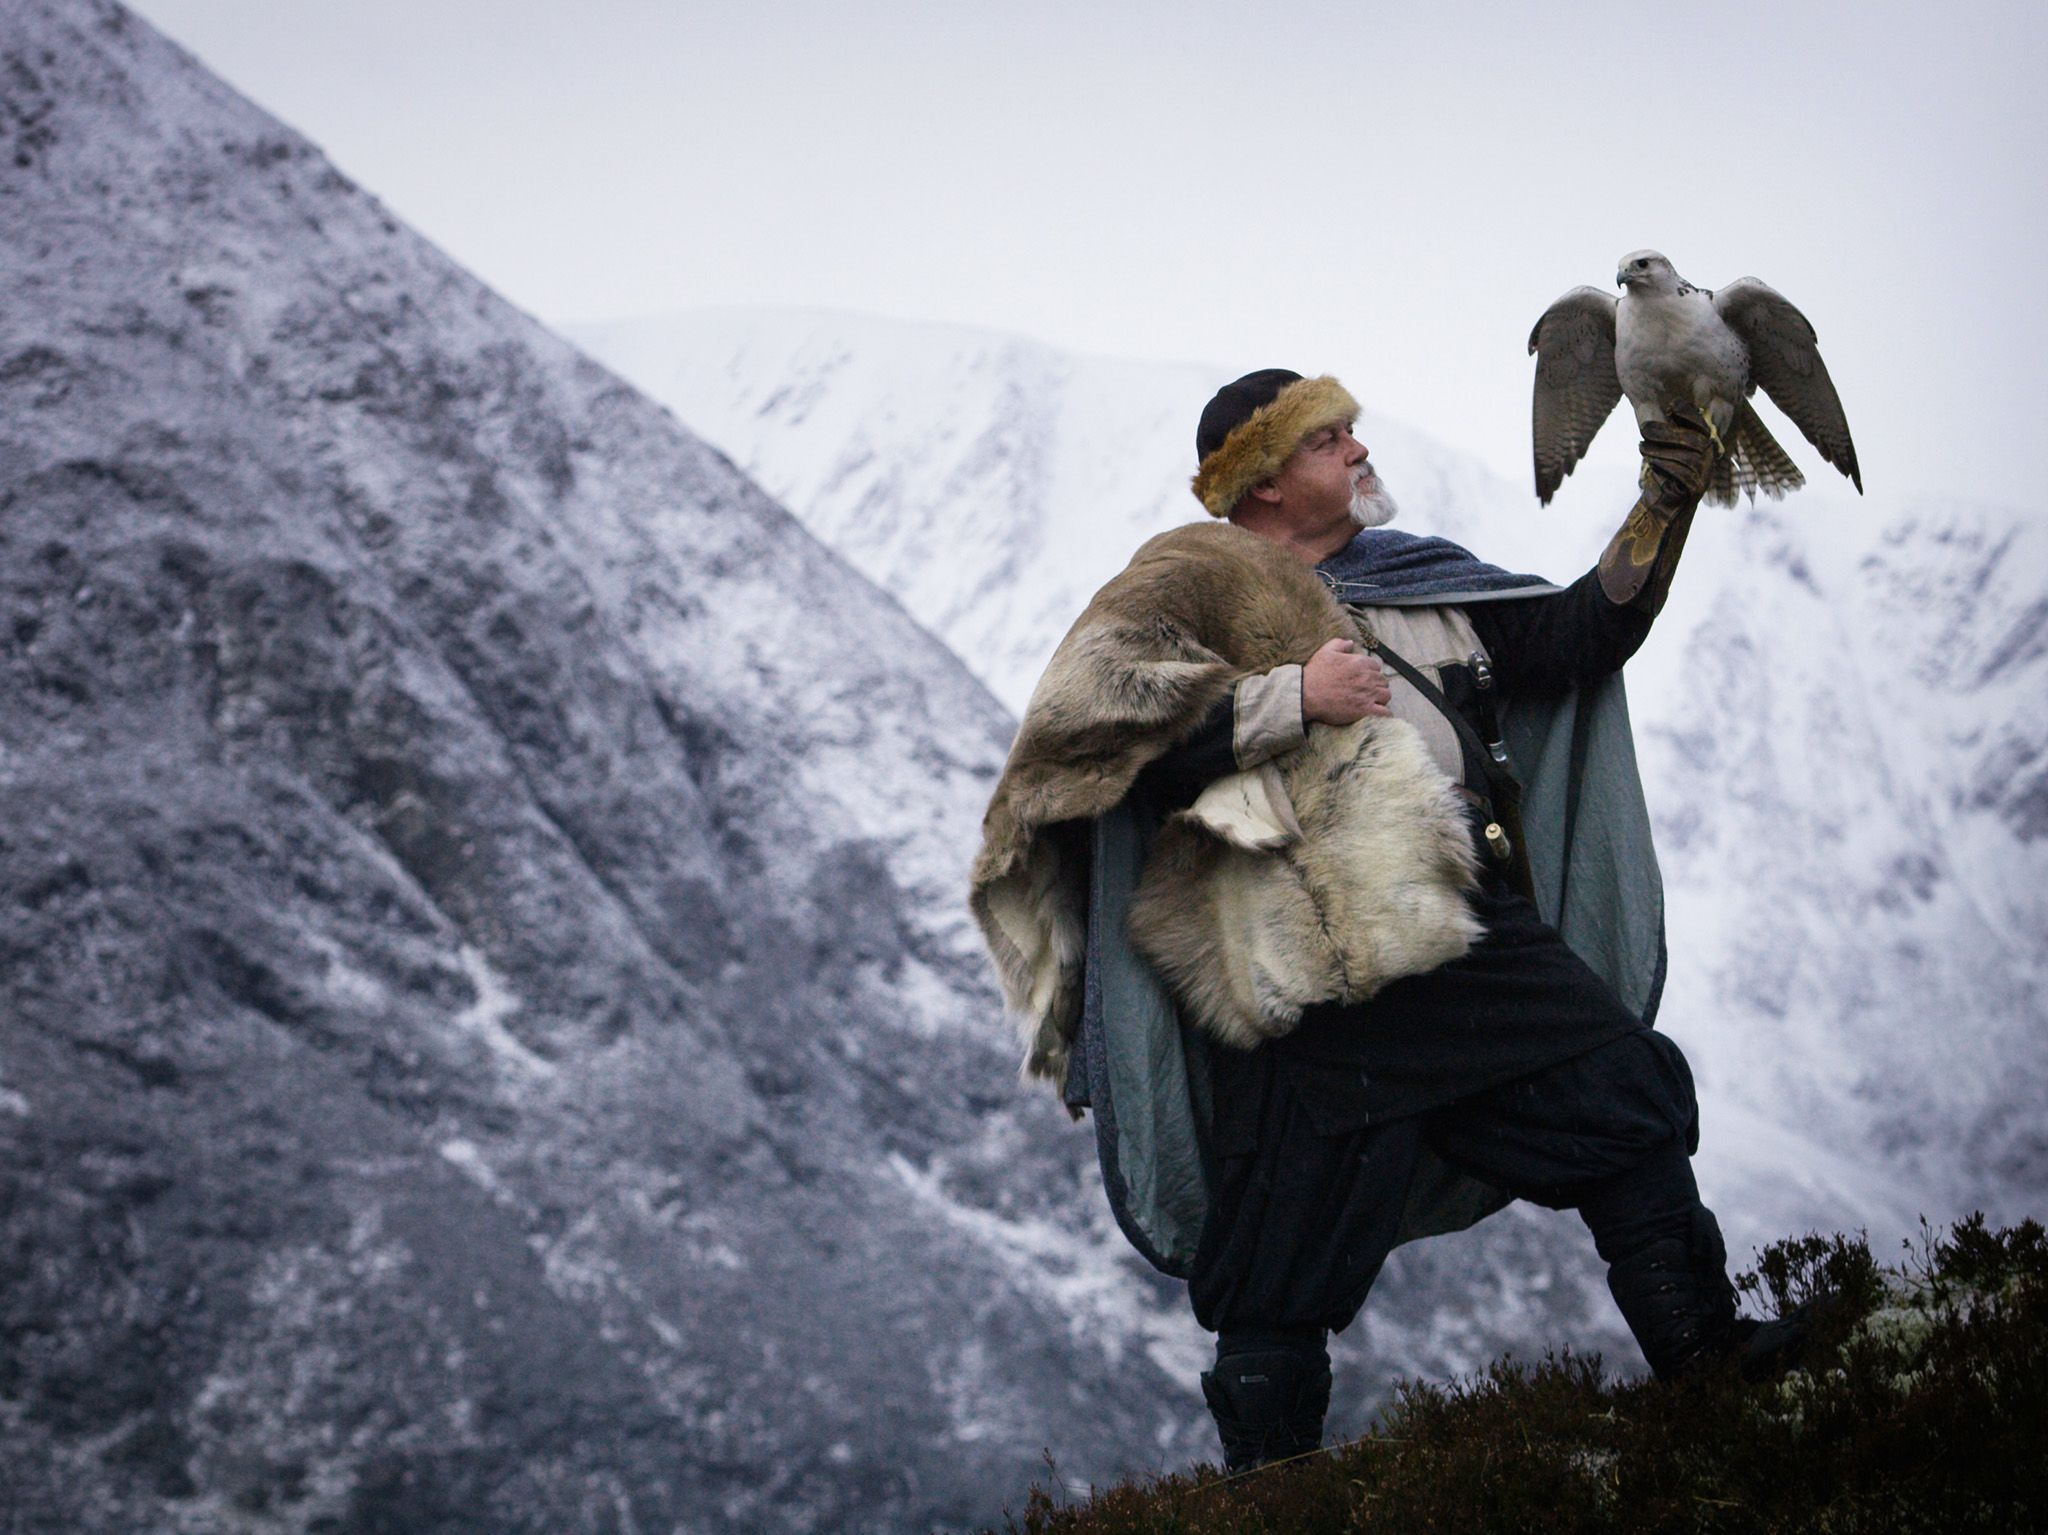 A Viking reenactor and a Gyrfalcon pose in snowy landscape at Alladale Wilderness reserve in... [Photo of the day - March 2019]